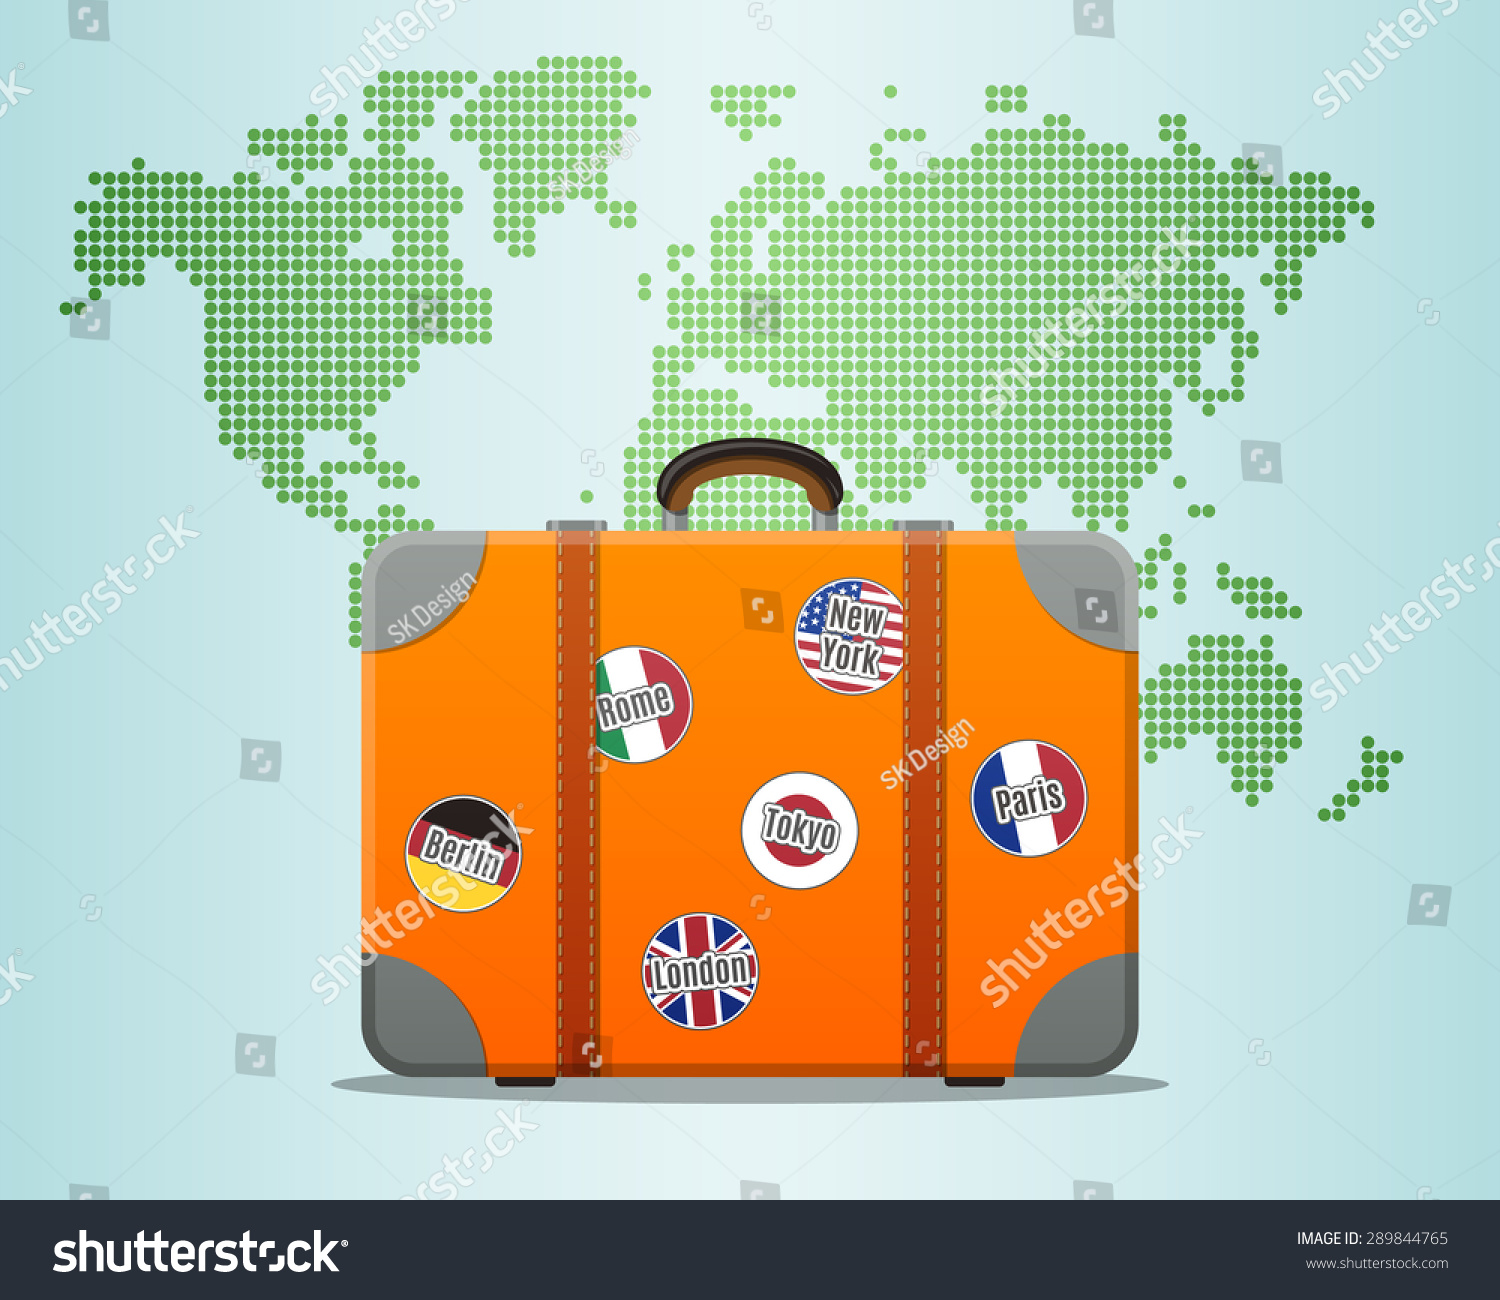 Travel suitcase stickers world map stock vector 289844765 shutterstock travel suitcase with stickers and world map gumiabroncs Image collections